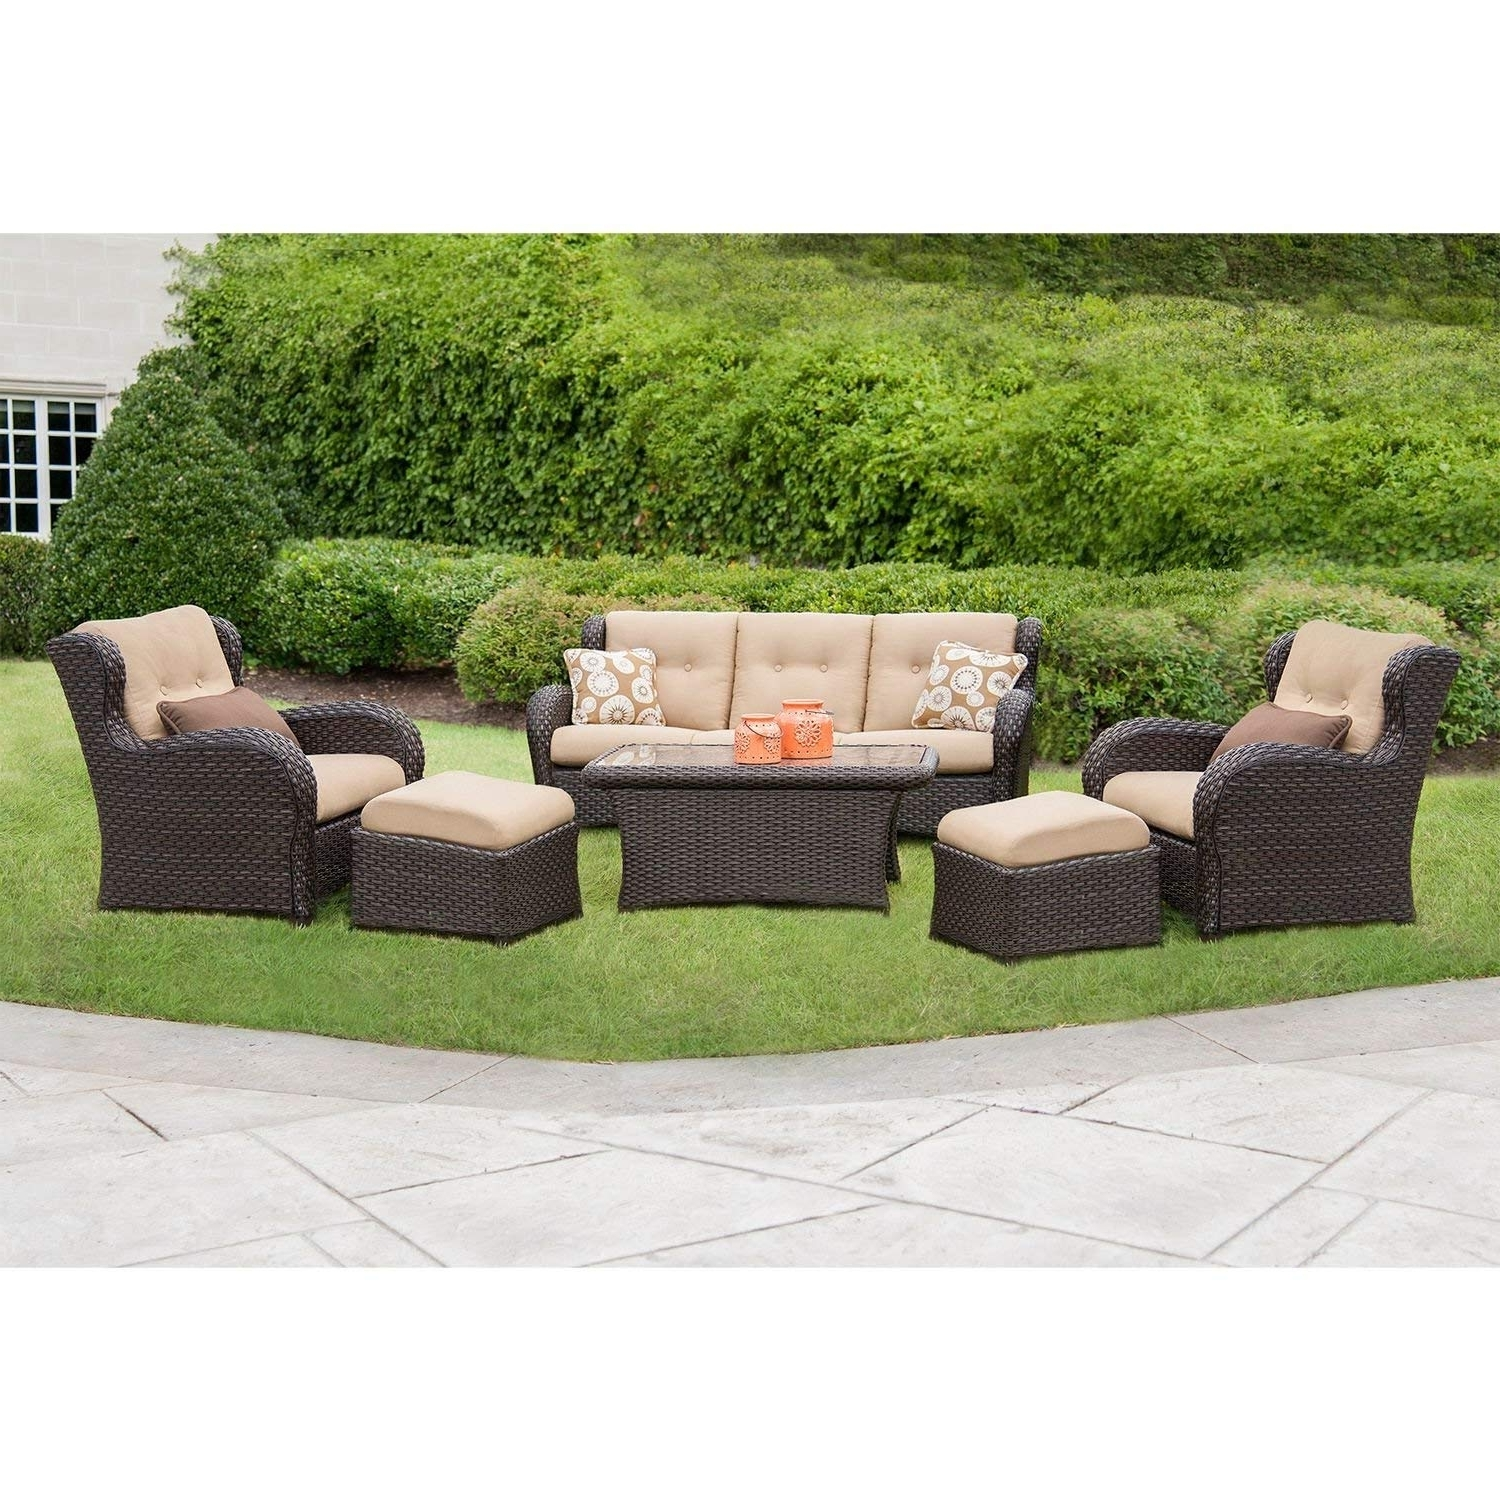 Latest Amazon : Outdoor Patio Furniture, Deep Seating Set With Premium Throughout Patio Conversation Sets At Sam's Club (View 10 of 15)